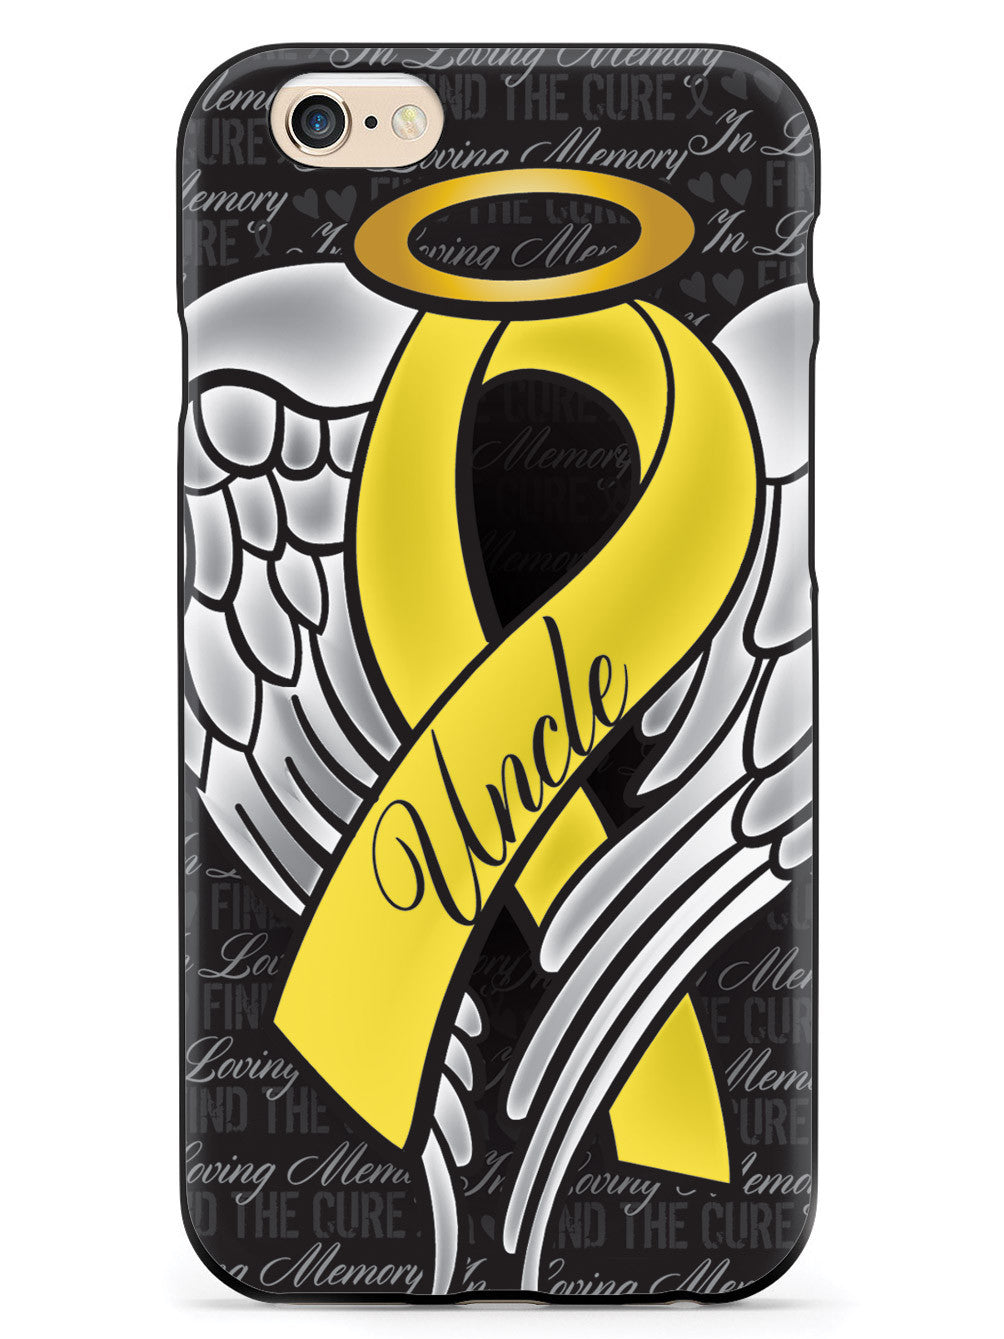 In Loving Memory of My Uncle - Yellow Ribbon Case